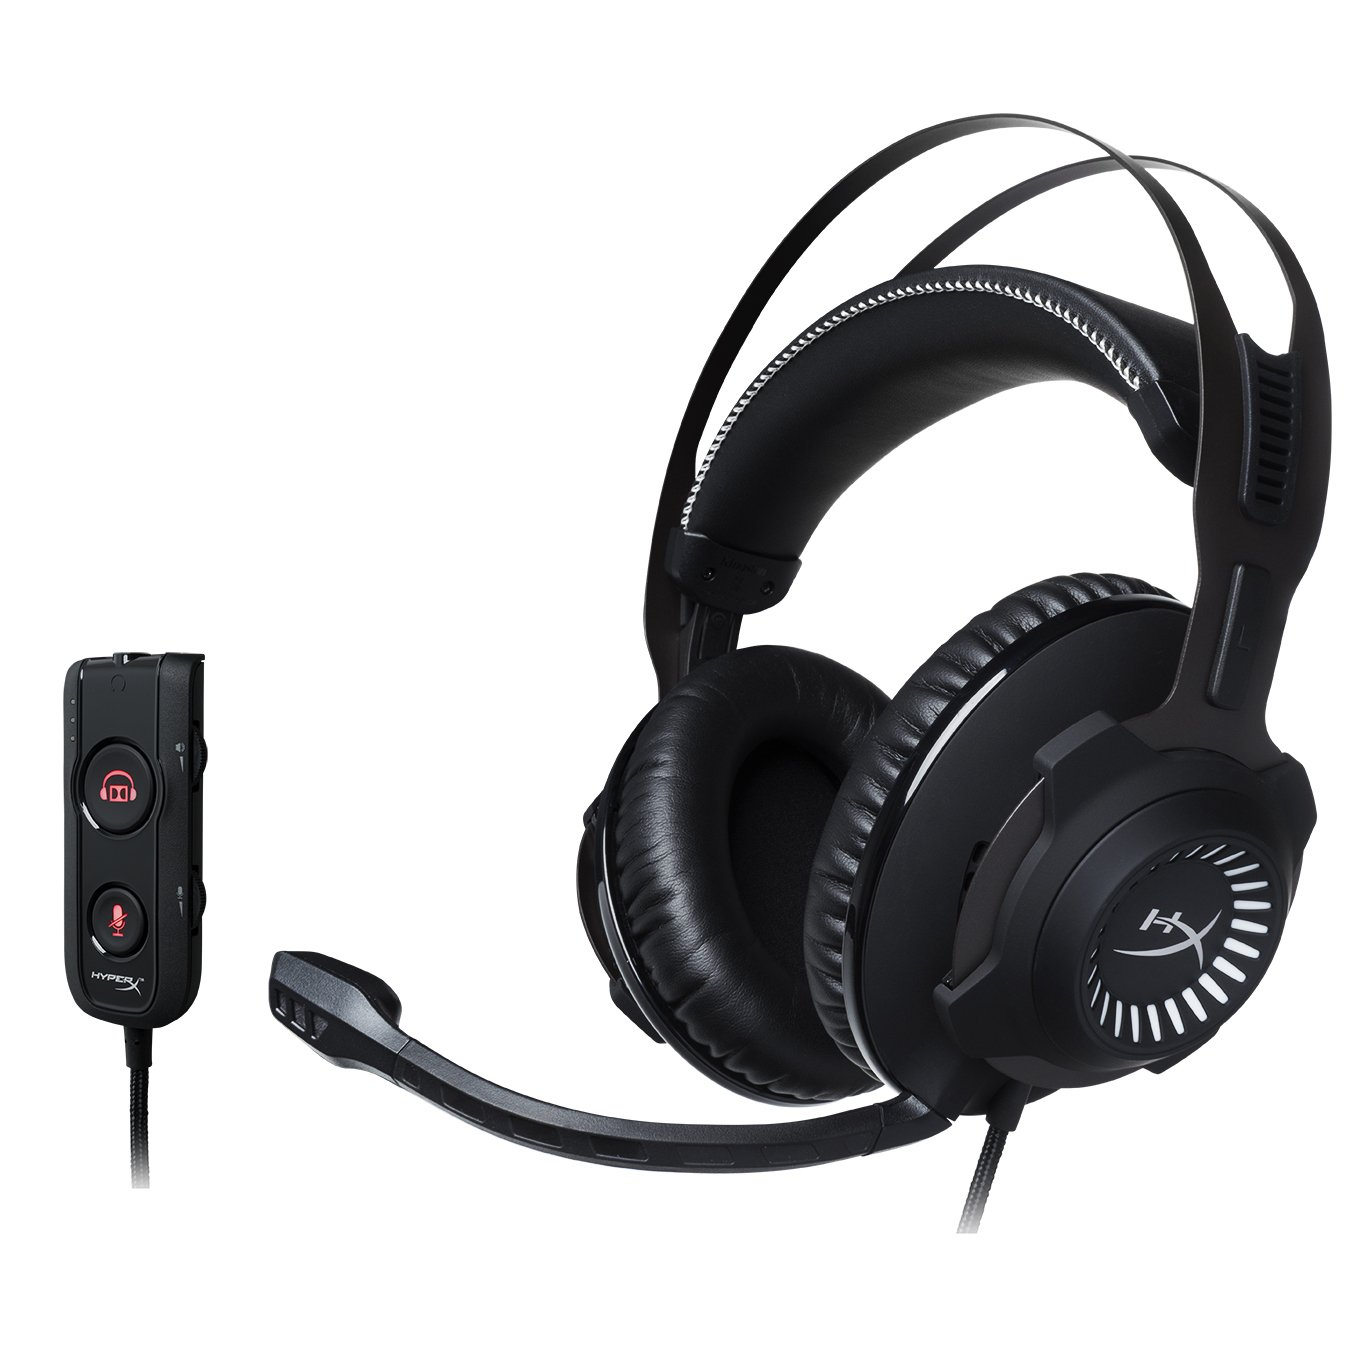 HyperX Cloud Revolver S - Gaming Headset with Dolby 7.1 Surround Sound - Steel Frame - Signature Memory Foam - Premium Leatherette - Detachable noise-cancellation microphone by HyperX